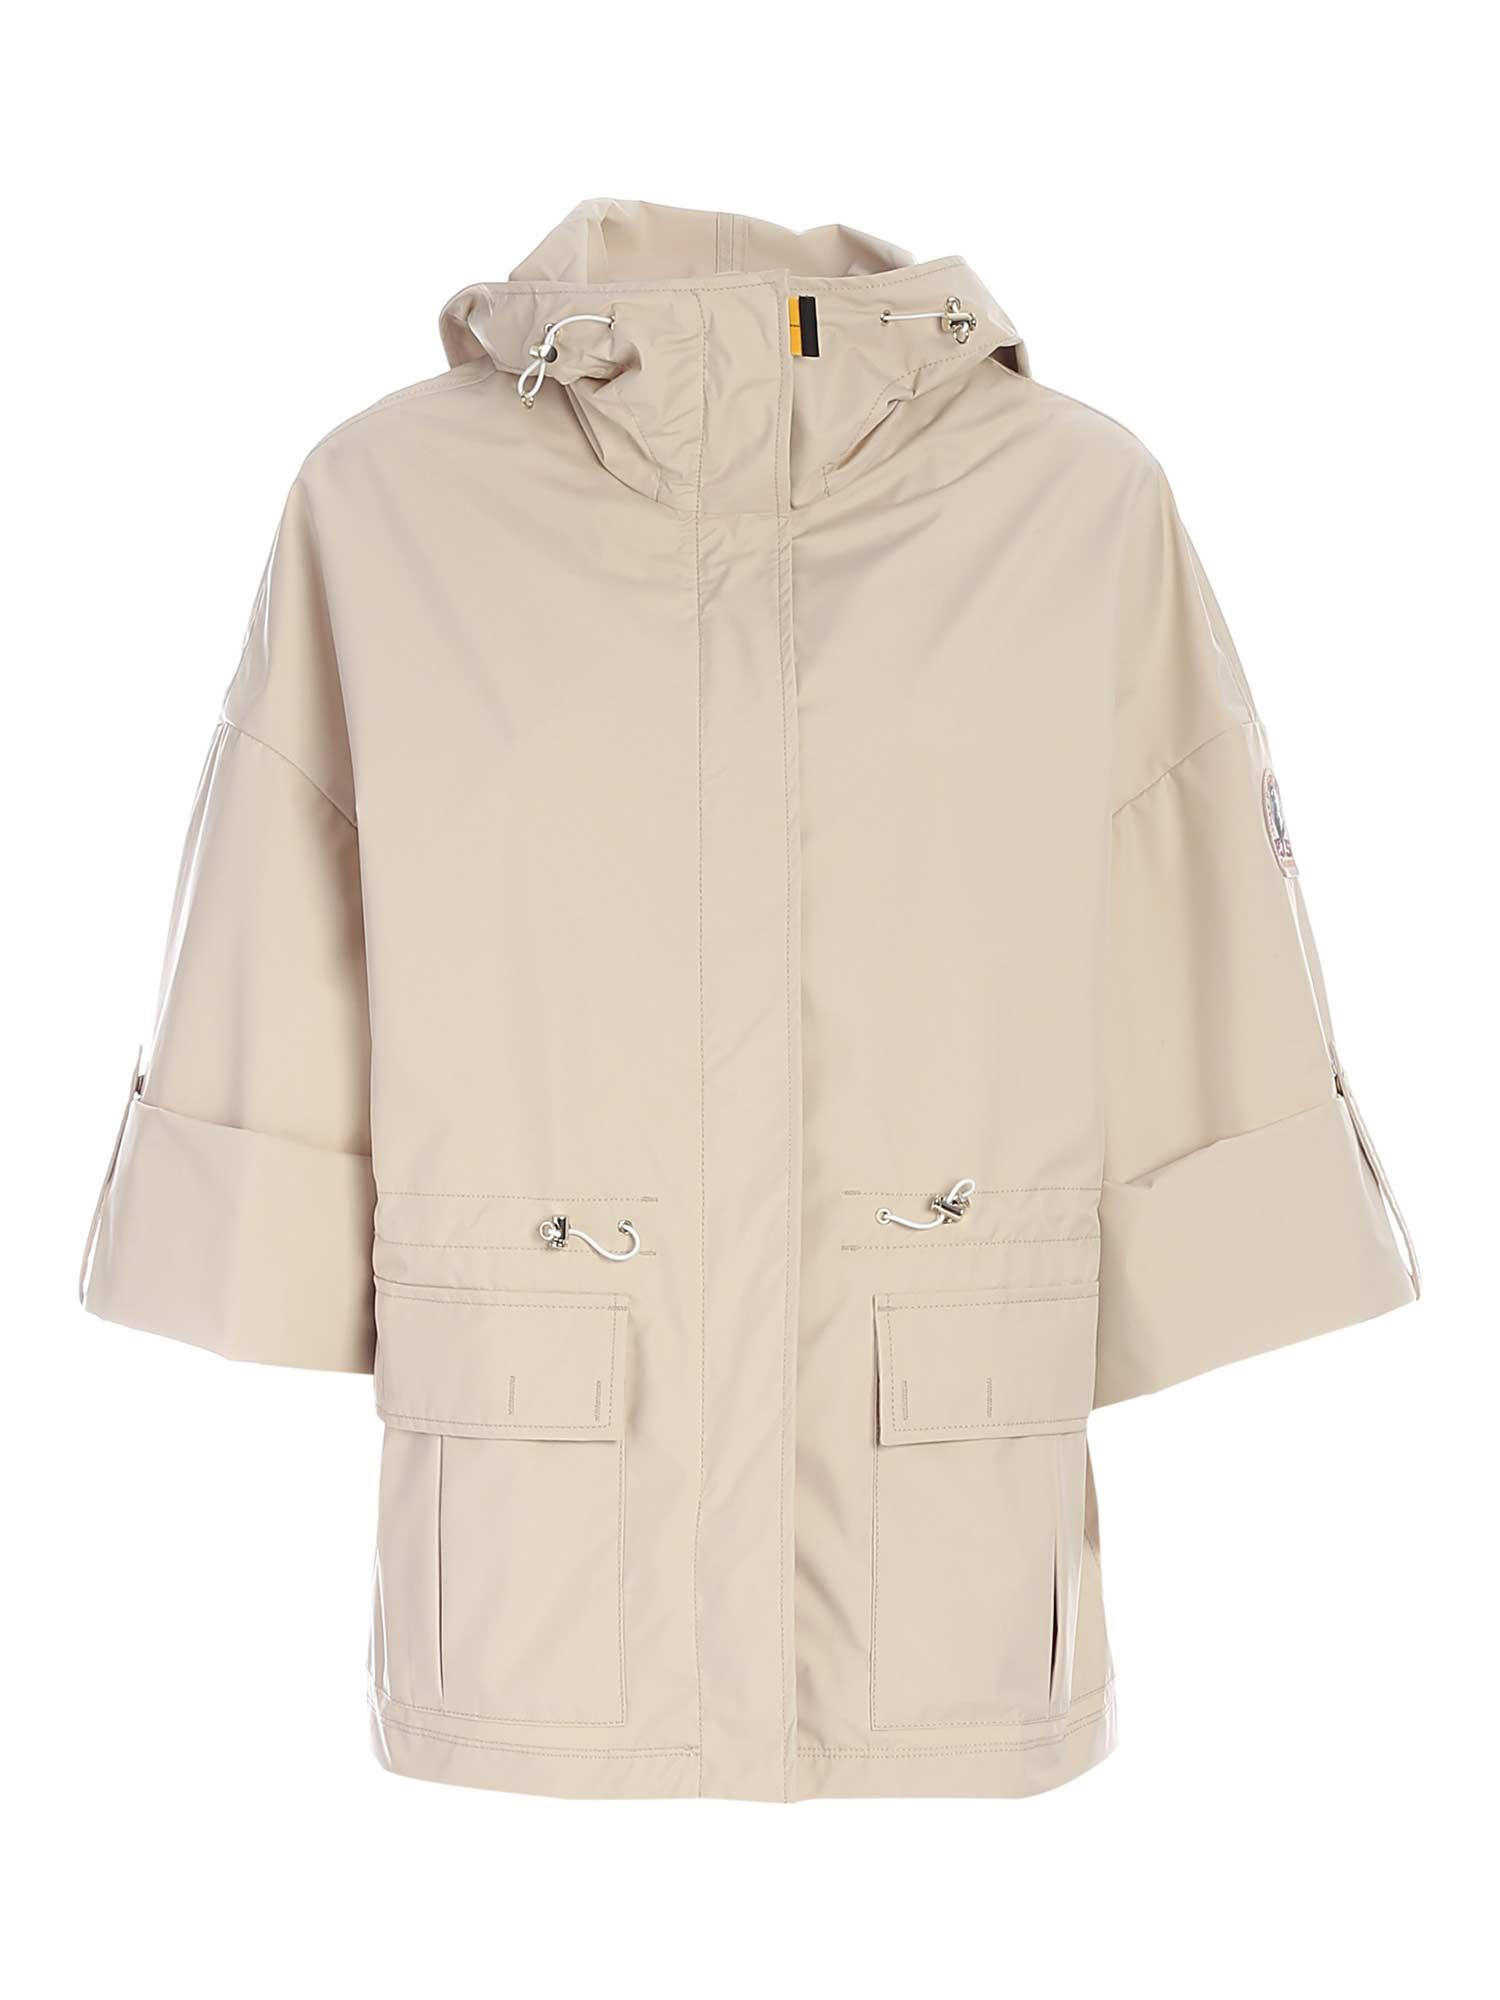 Parajumpers HAILEE JACKET IN BEIGE